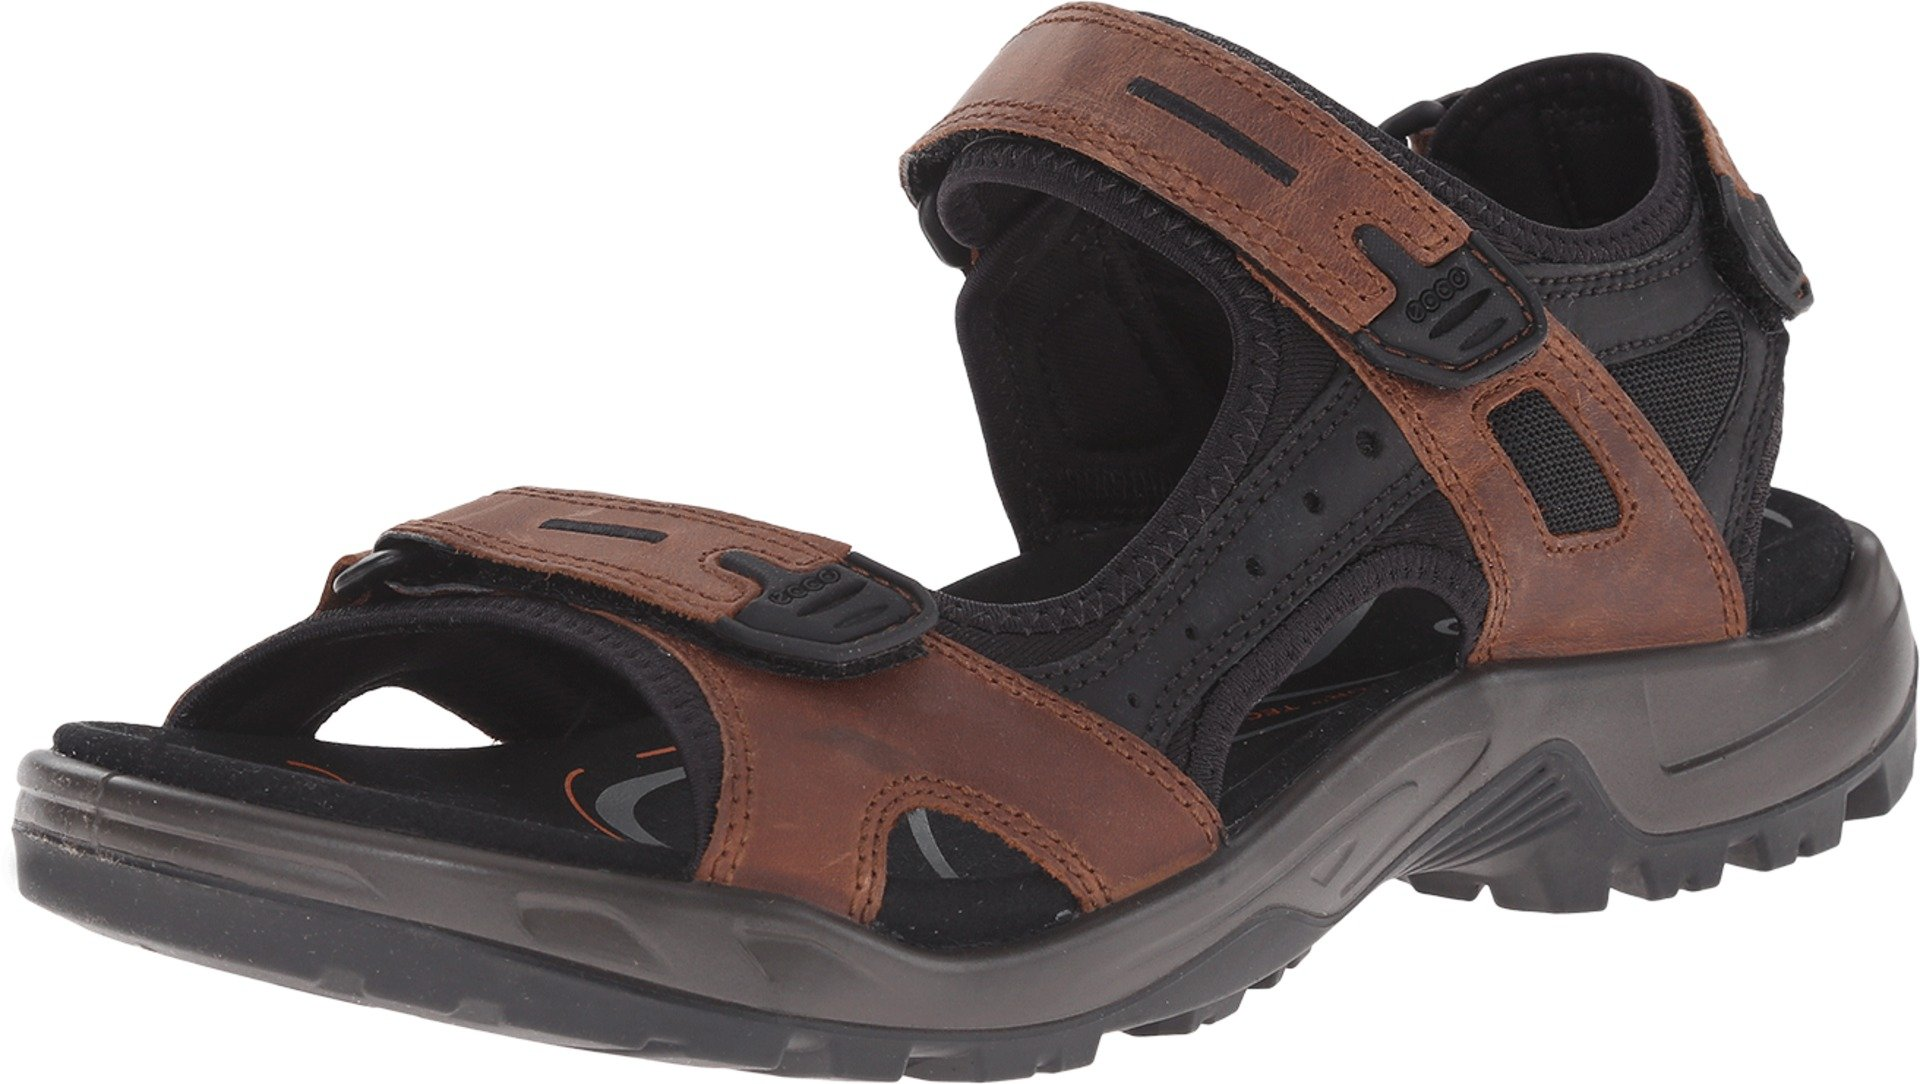 ECCO Men's Yucatan Sandal,Bison/Black/Black,41 EU (US Men's 7-7.5 M) by ECCO